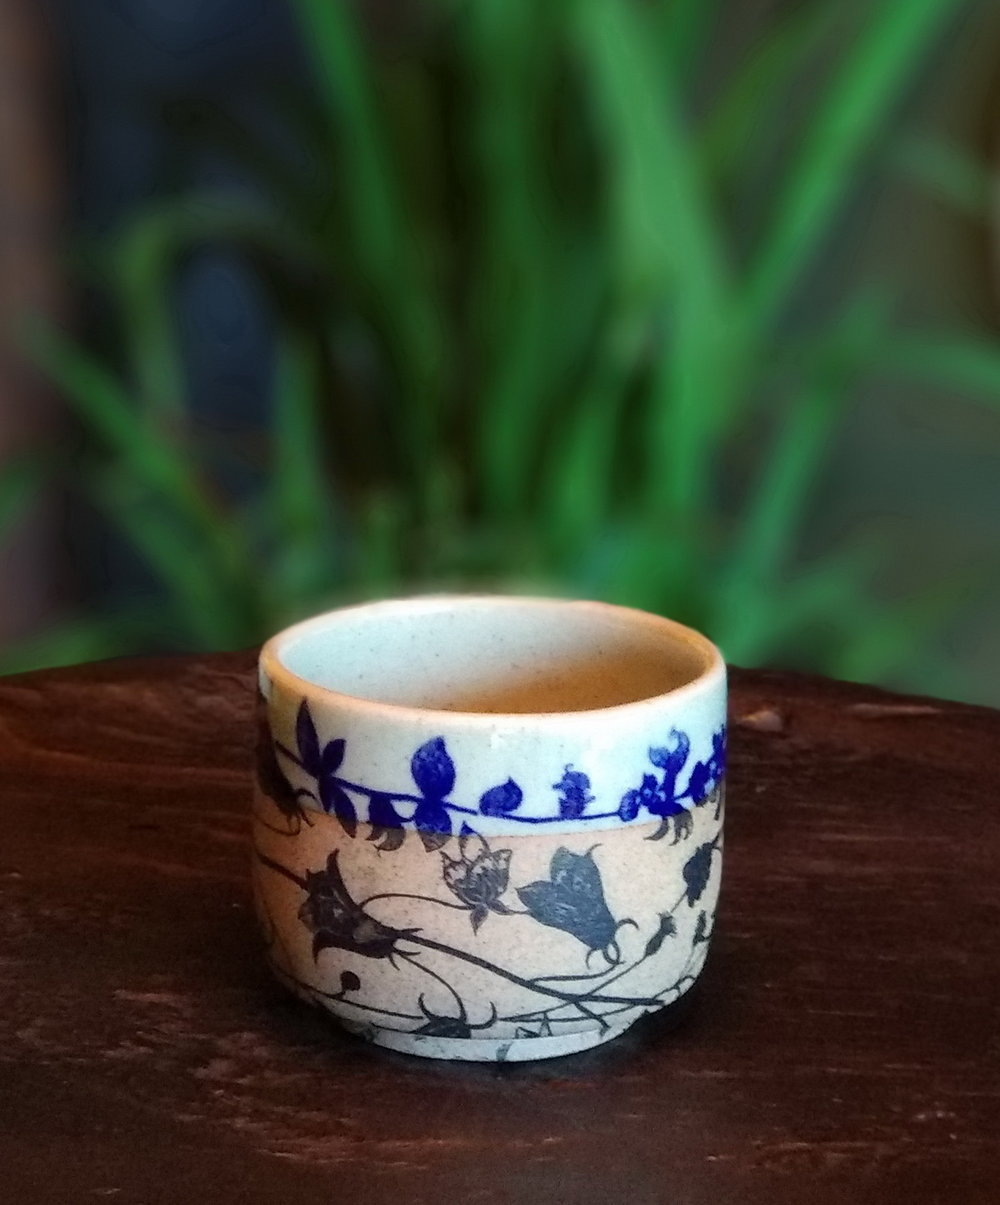 tea cup dry brown blue shiny ash celadon.jpg